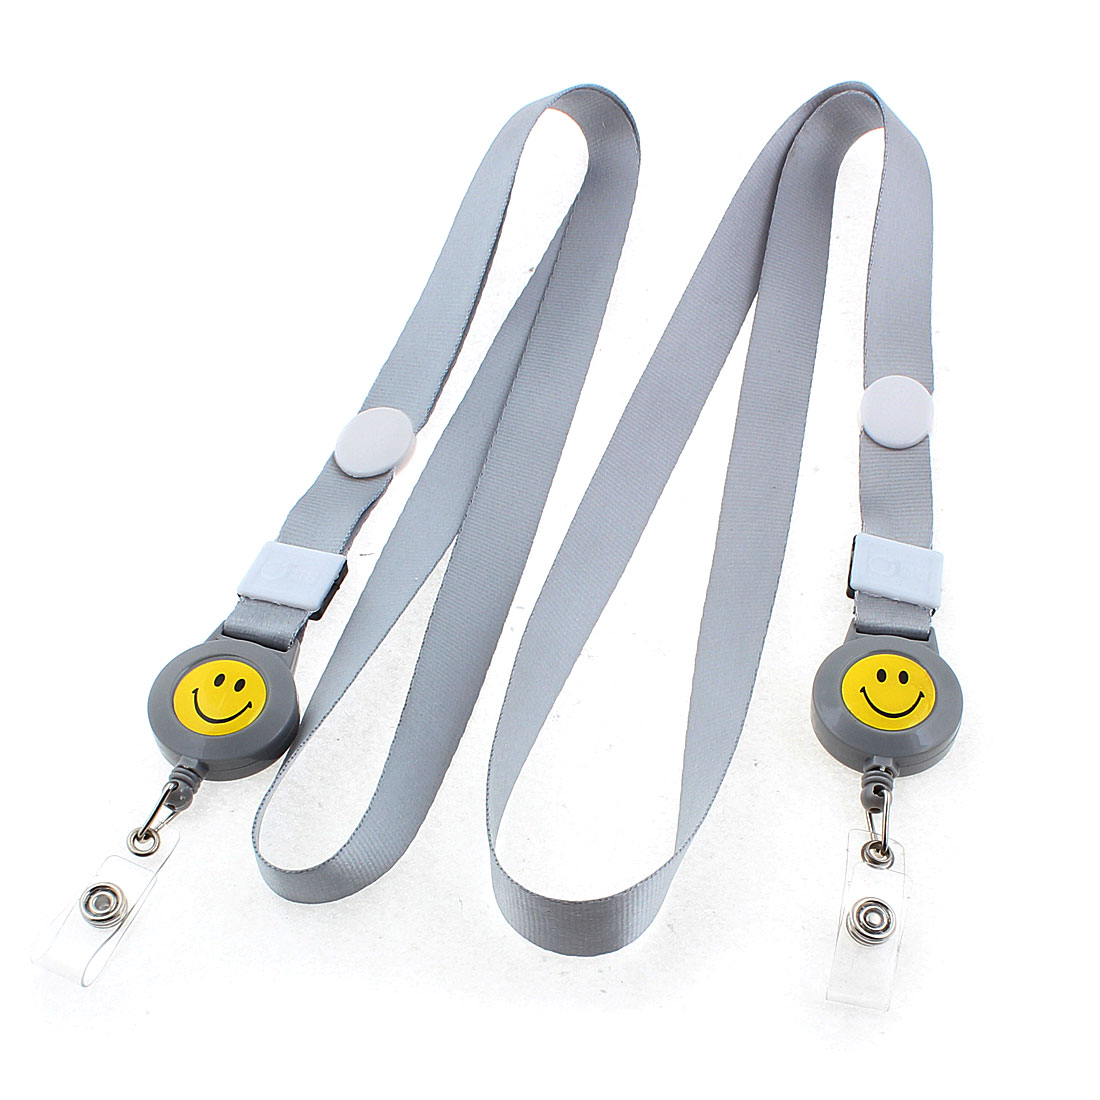 Work Name ID Card Badge Holder Smile Face Pattern Neck Strap Gray 2PCS